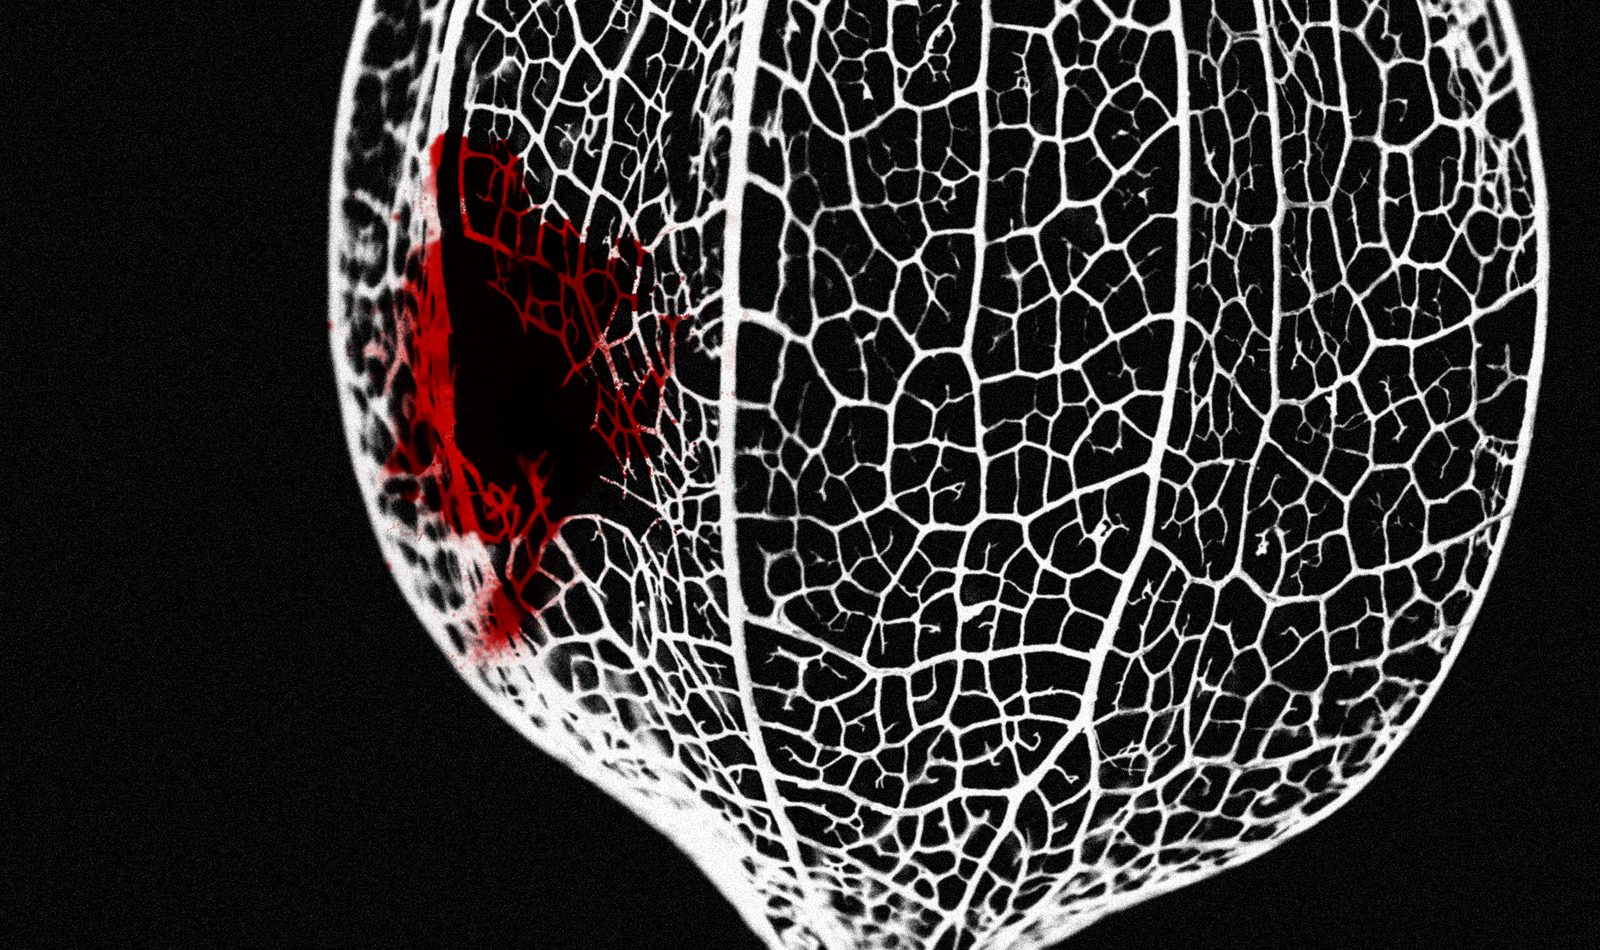 The Nature of Why show image, showing a textured almost heart like shape, with a patch of red that could be thought to be blood.